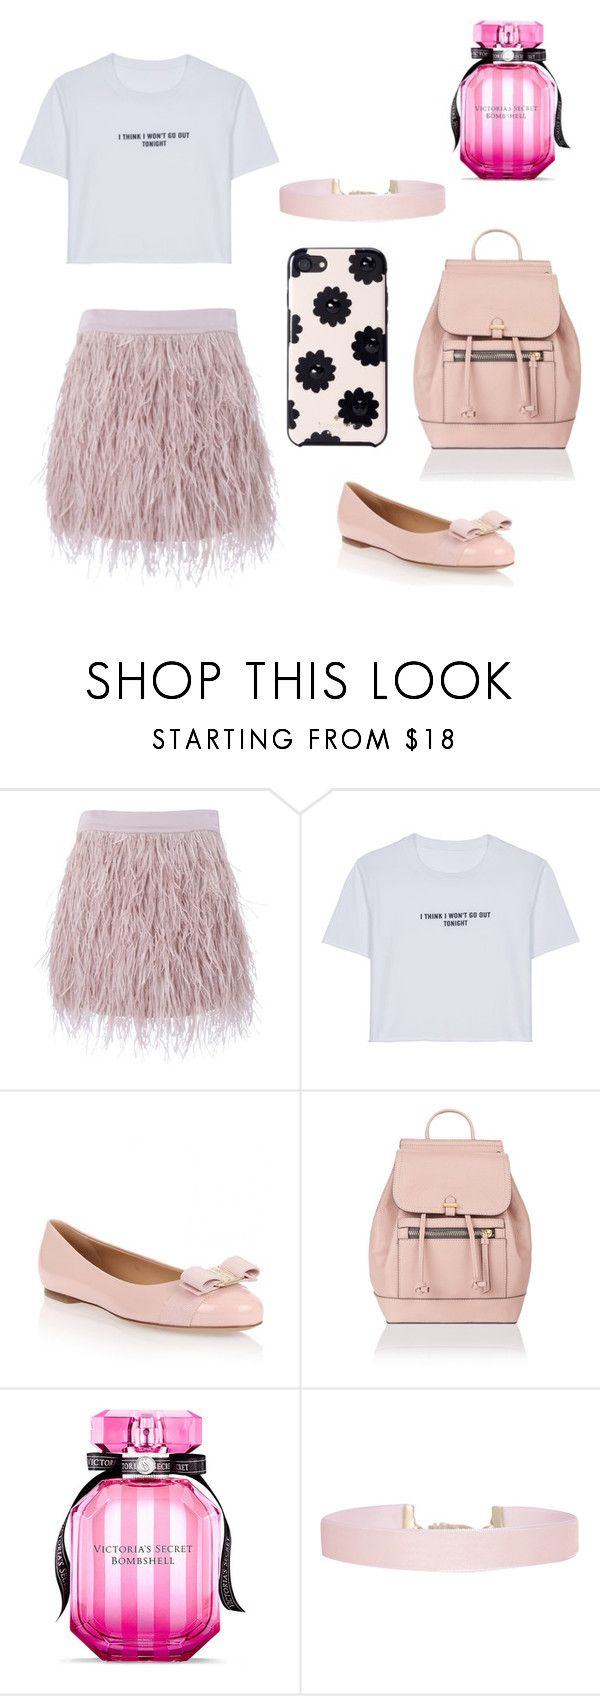 """Başlıksız #119"" by aysel-ulker ❤ liked on Polyvore featuring SuperTrash, WithChic, Salvatore Ferragamo, Accessorize, Victoria's Secret, Humble Chic and Kate Spade"